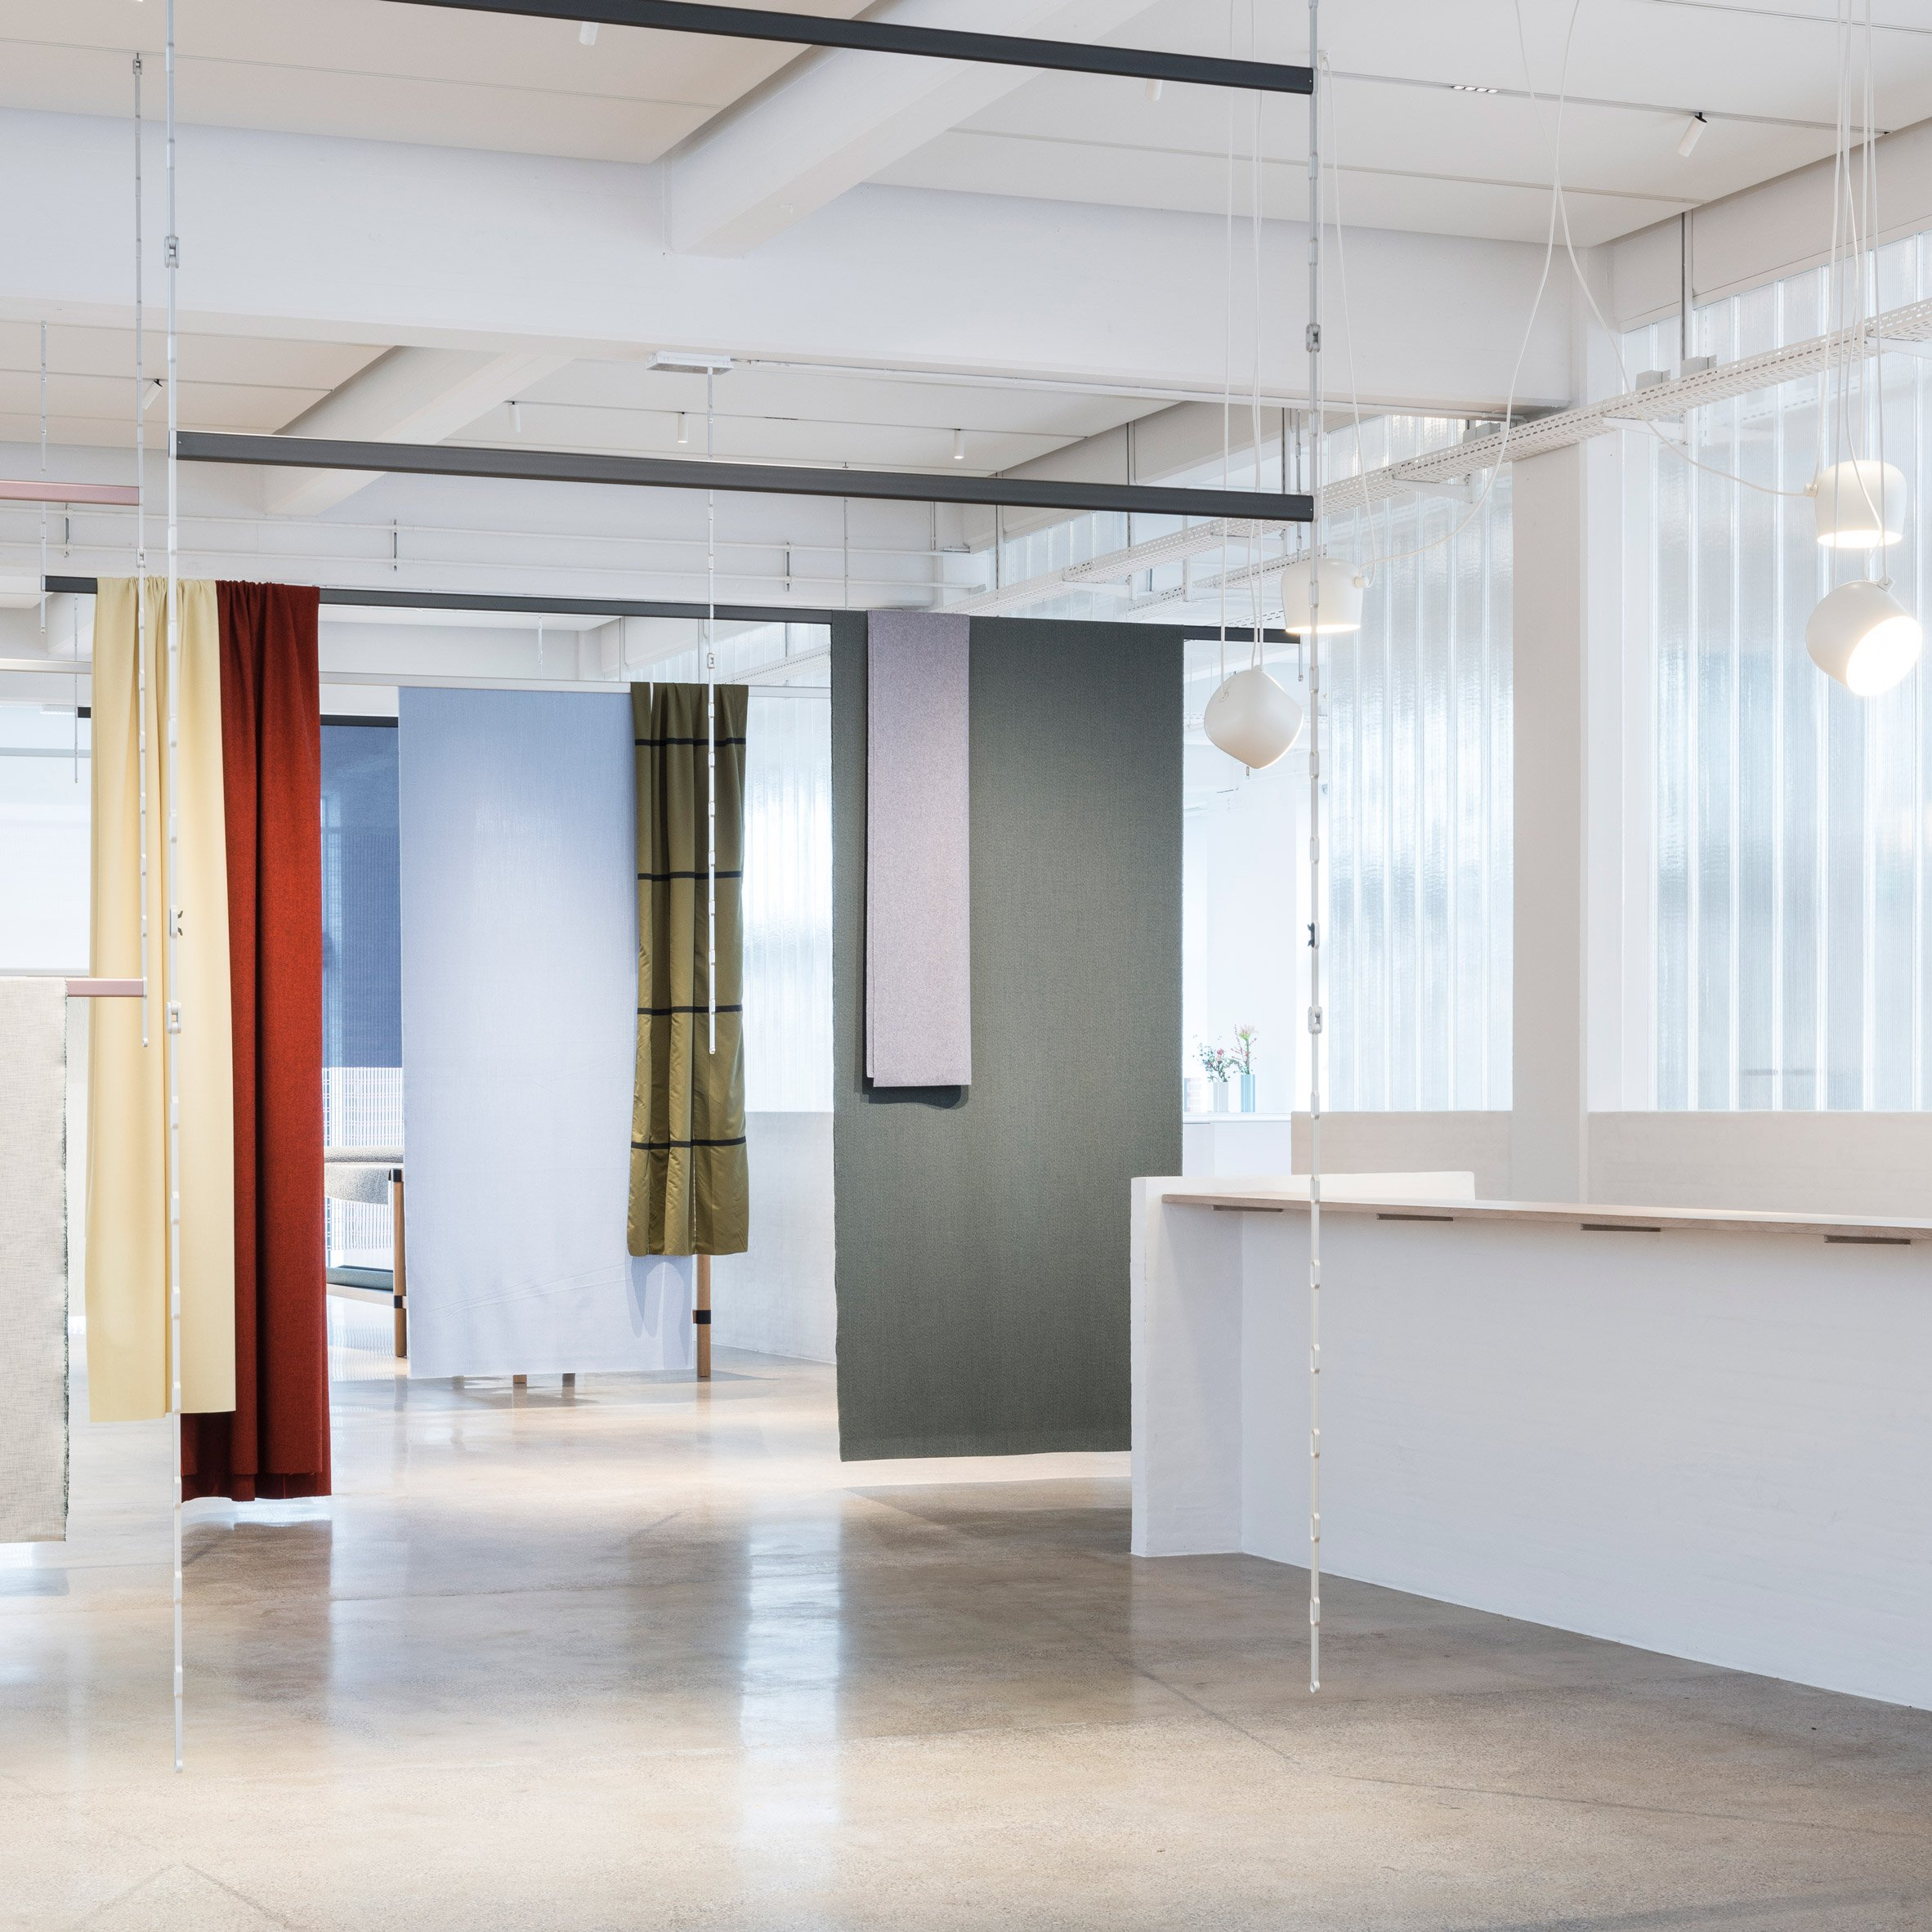 A Space Reflecting Kvadrat's Respect For Materiality